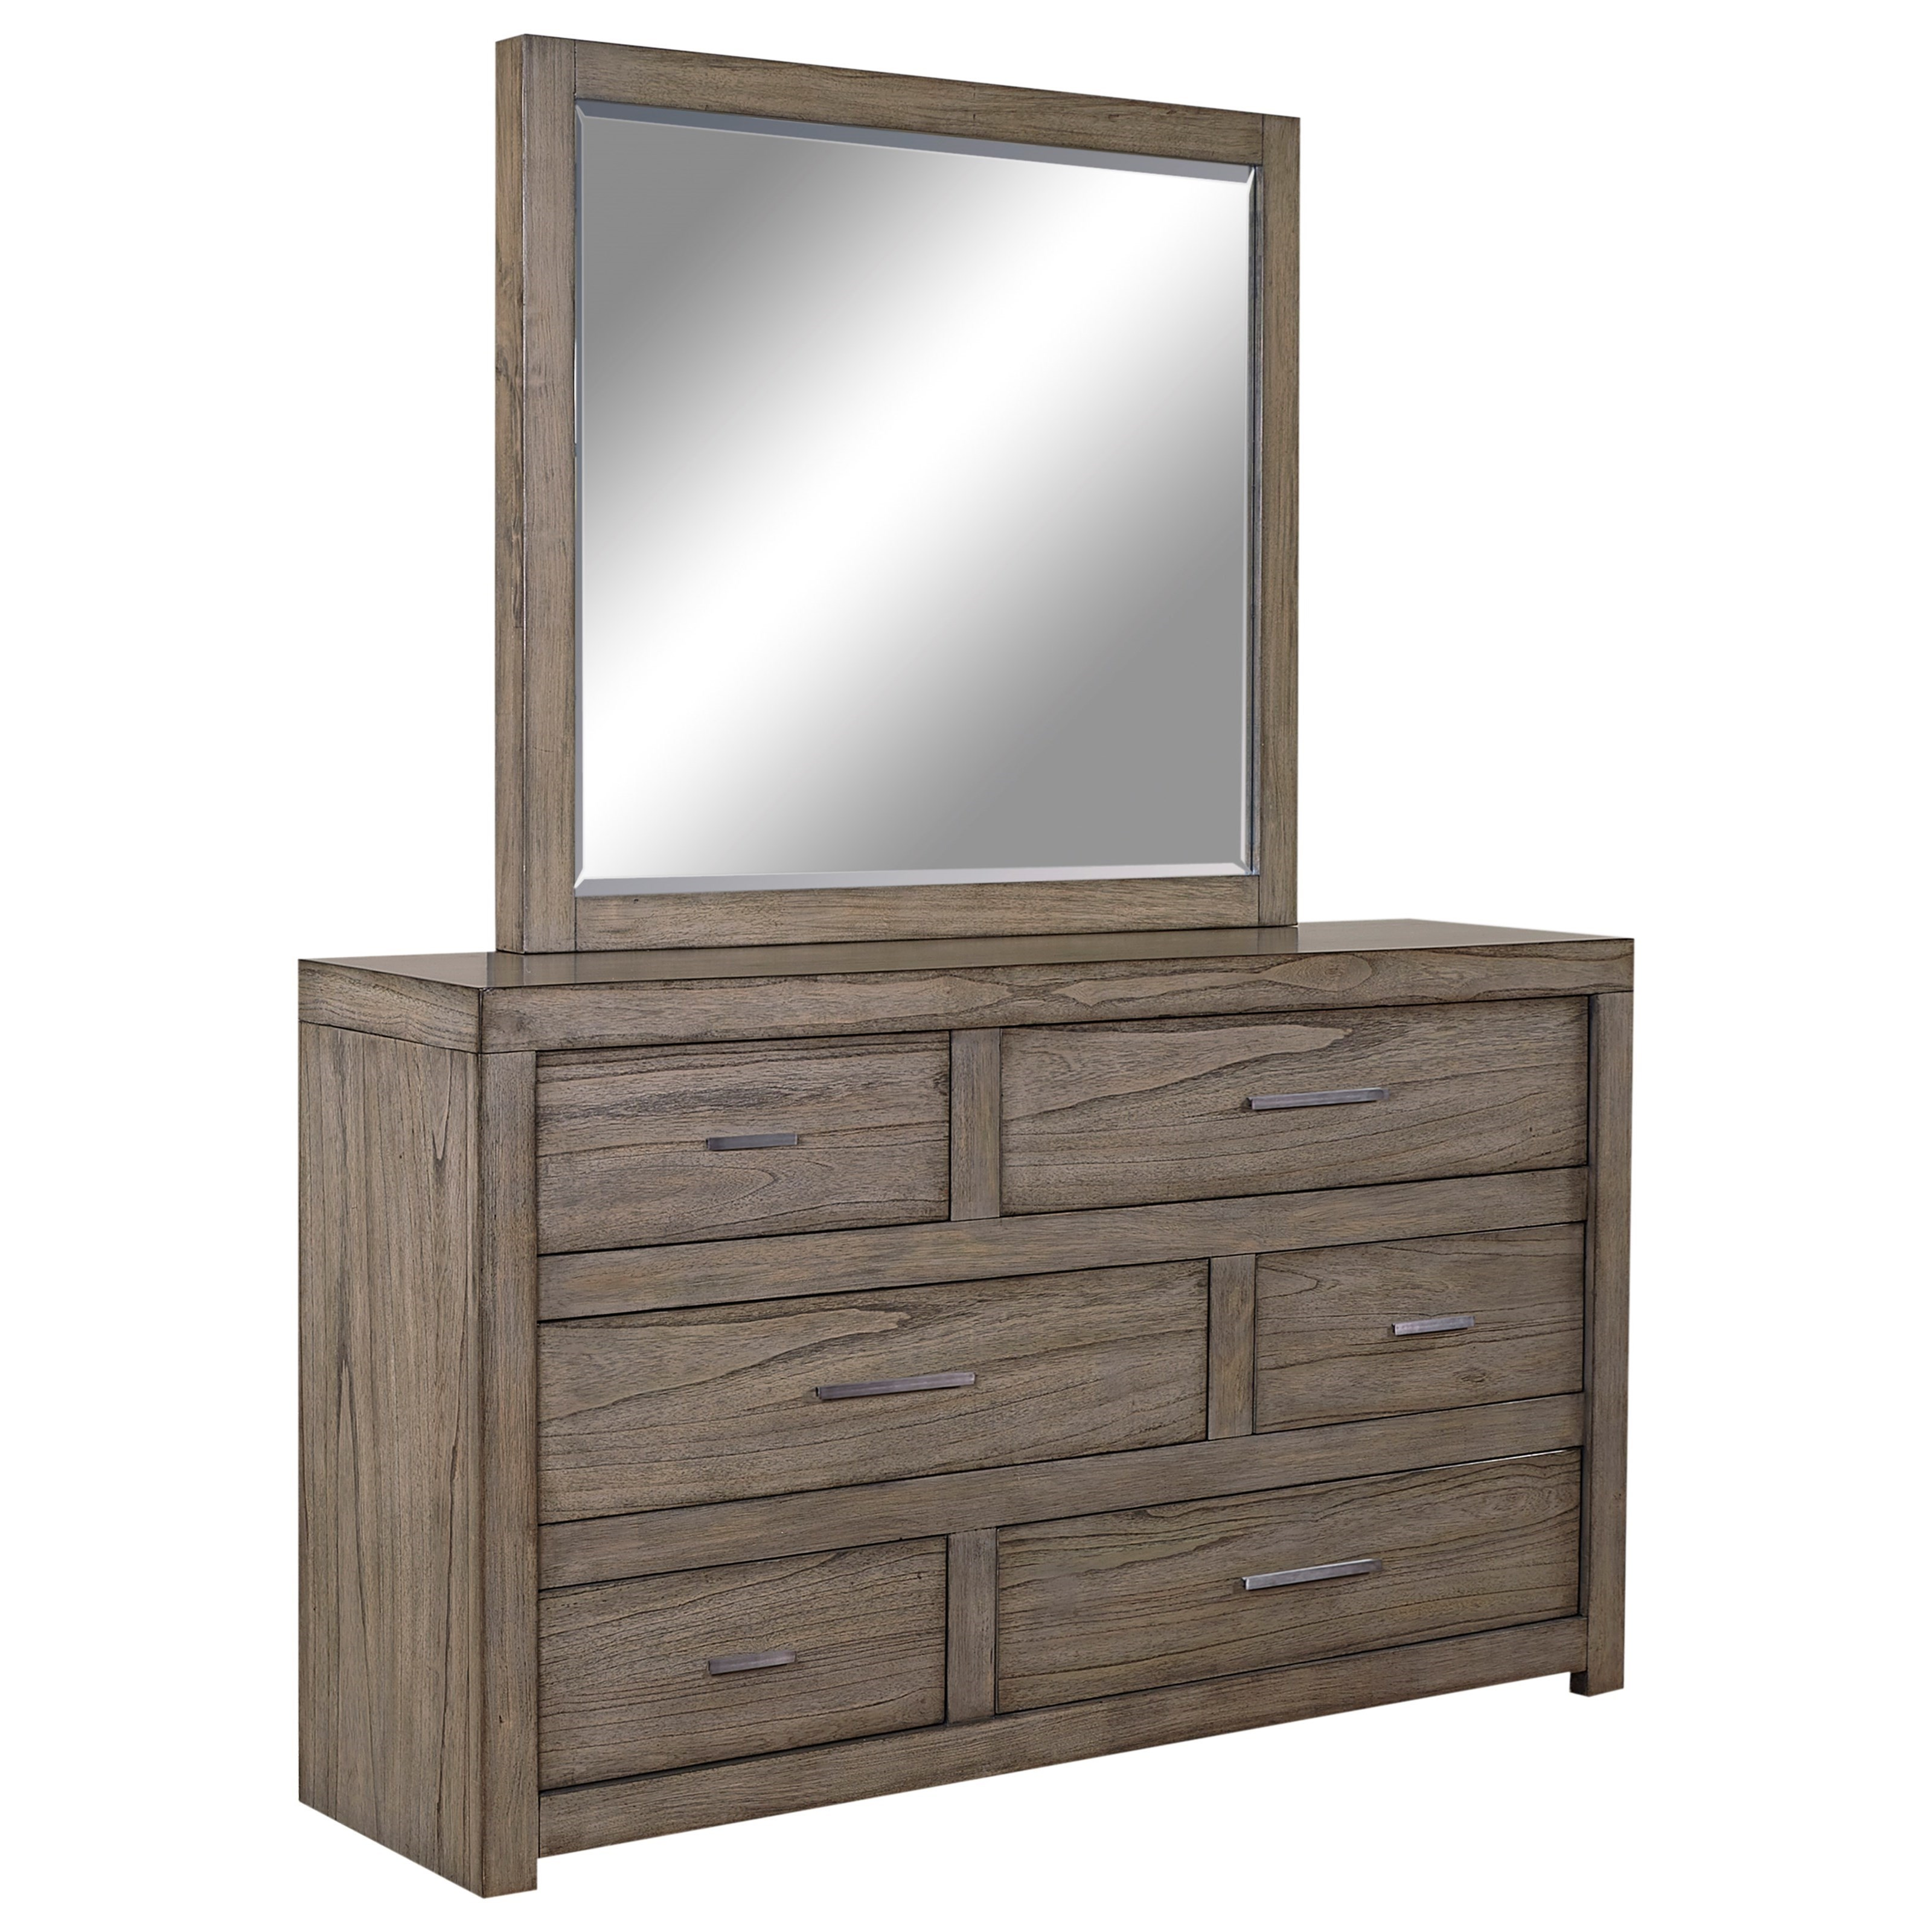 Aspenhome Modern Loft Dresser and Mirror Set - Item Number: IML-453+63-GRY